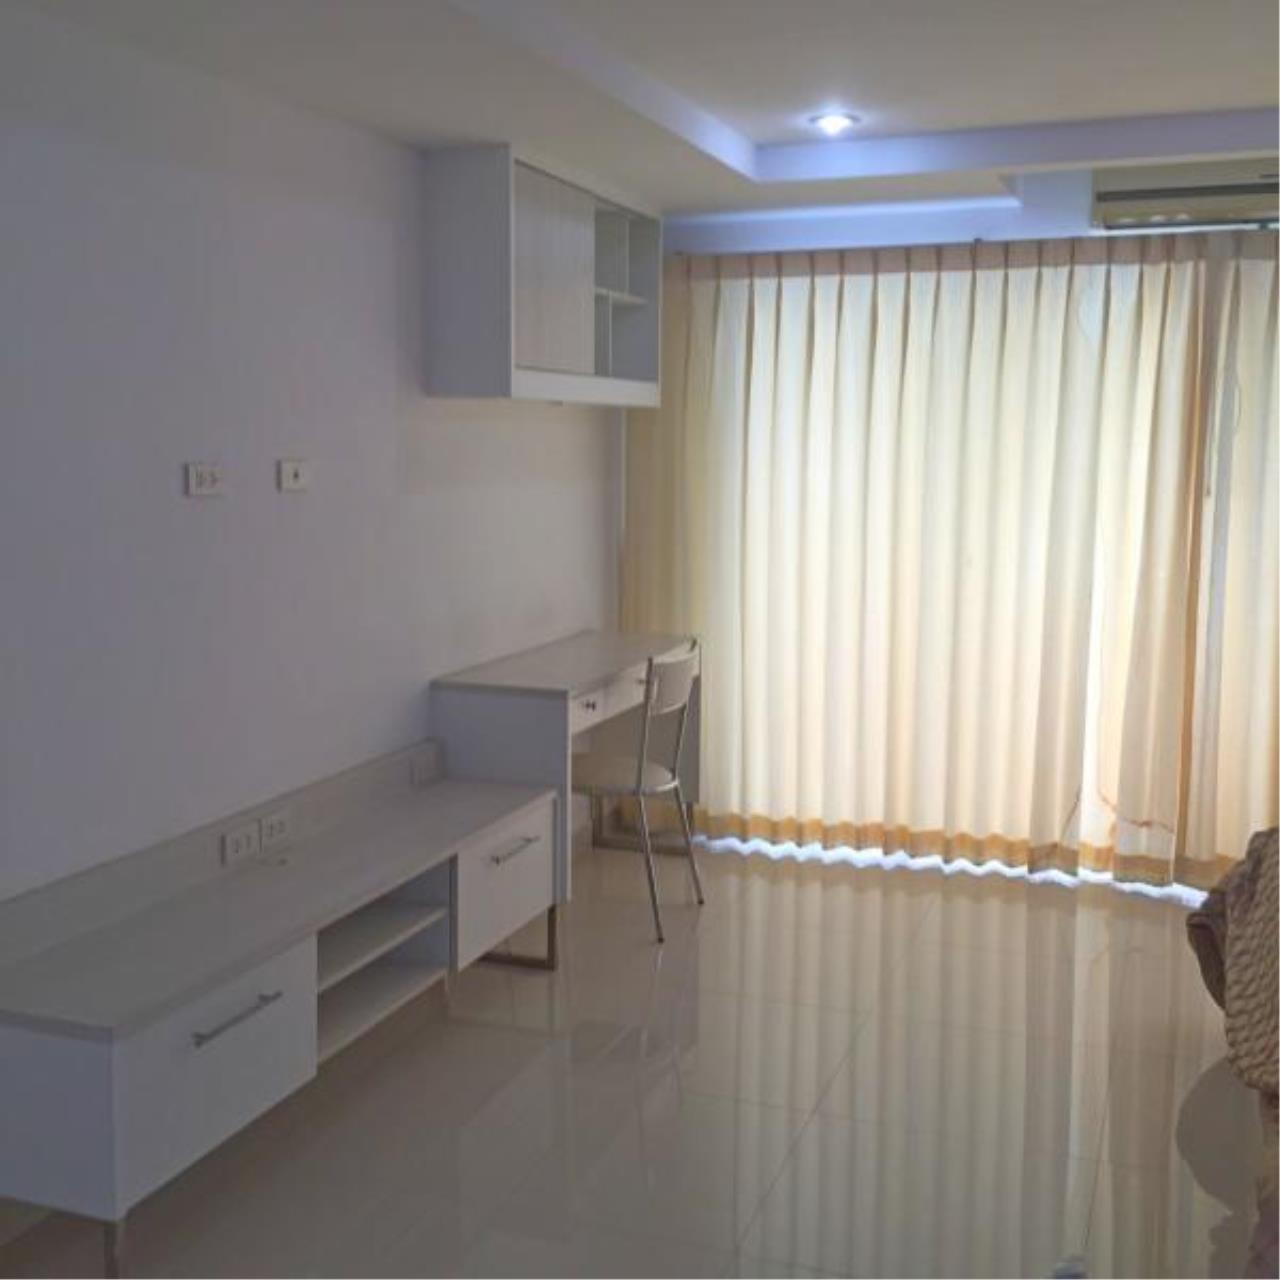 RE/MAX Town & Country Property Agency's Nice studio for sale in Jomtien 4